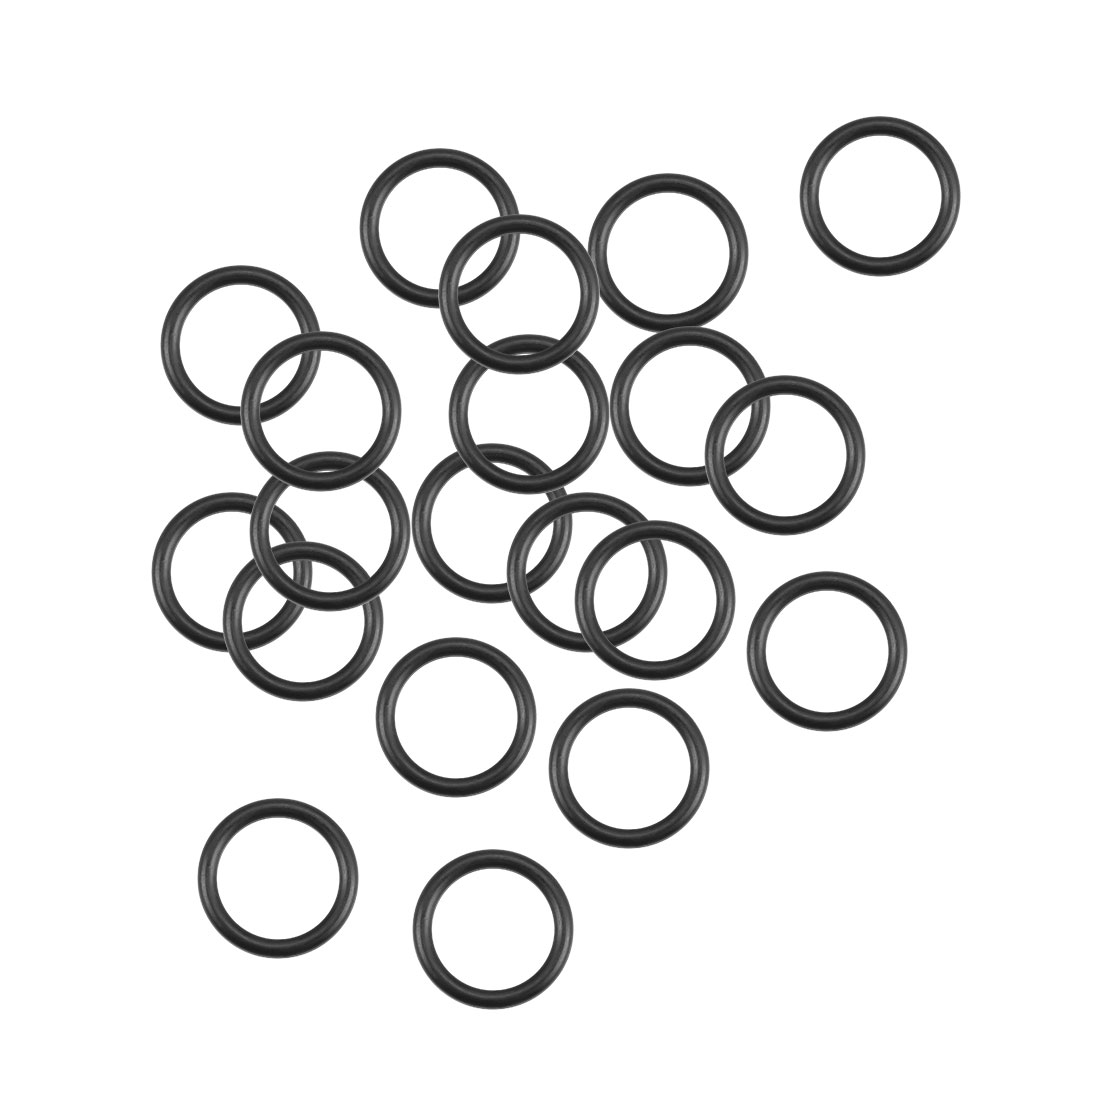 O-Rings Nitrile Rubber 10.8mm x 14.4mm x 1.8mm Round Seal Gasket 20Pcs